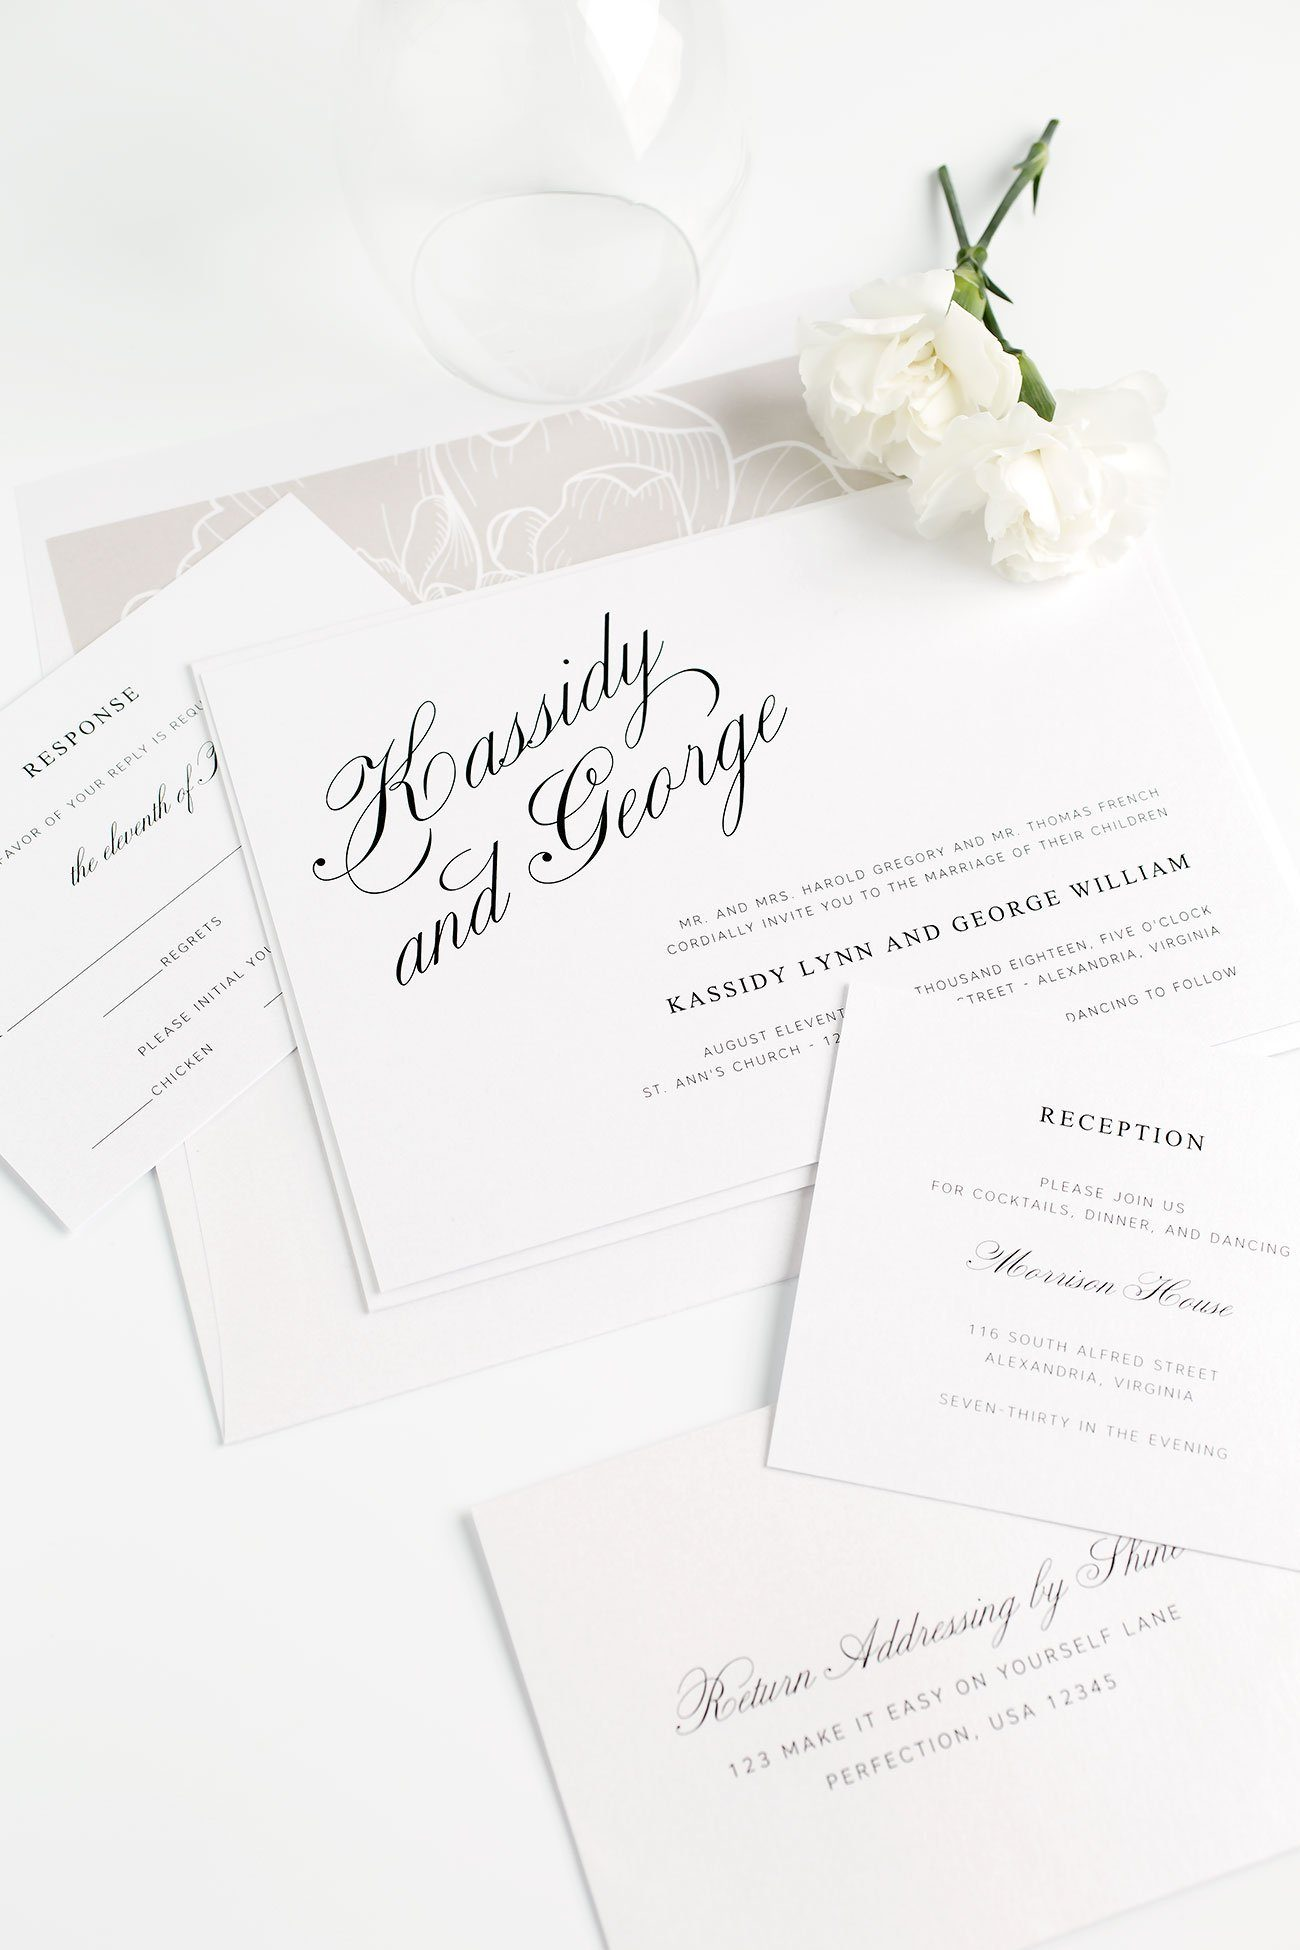 Elegant Wedding Invitations with a Floral Envelope Liner